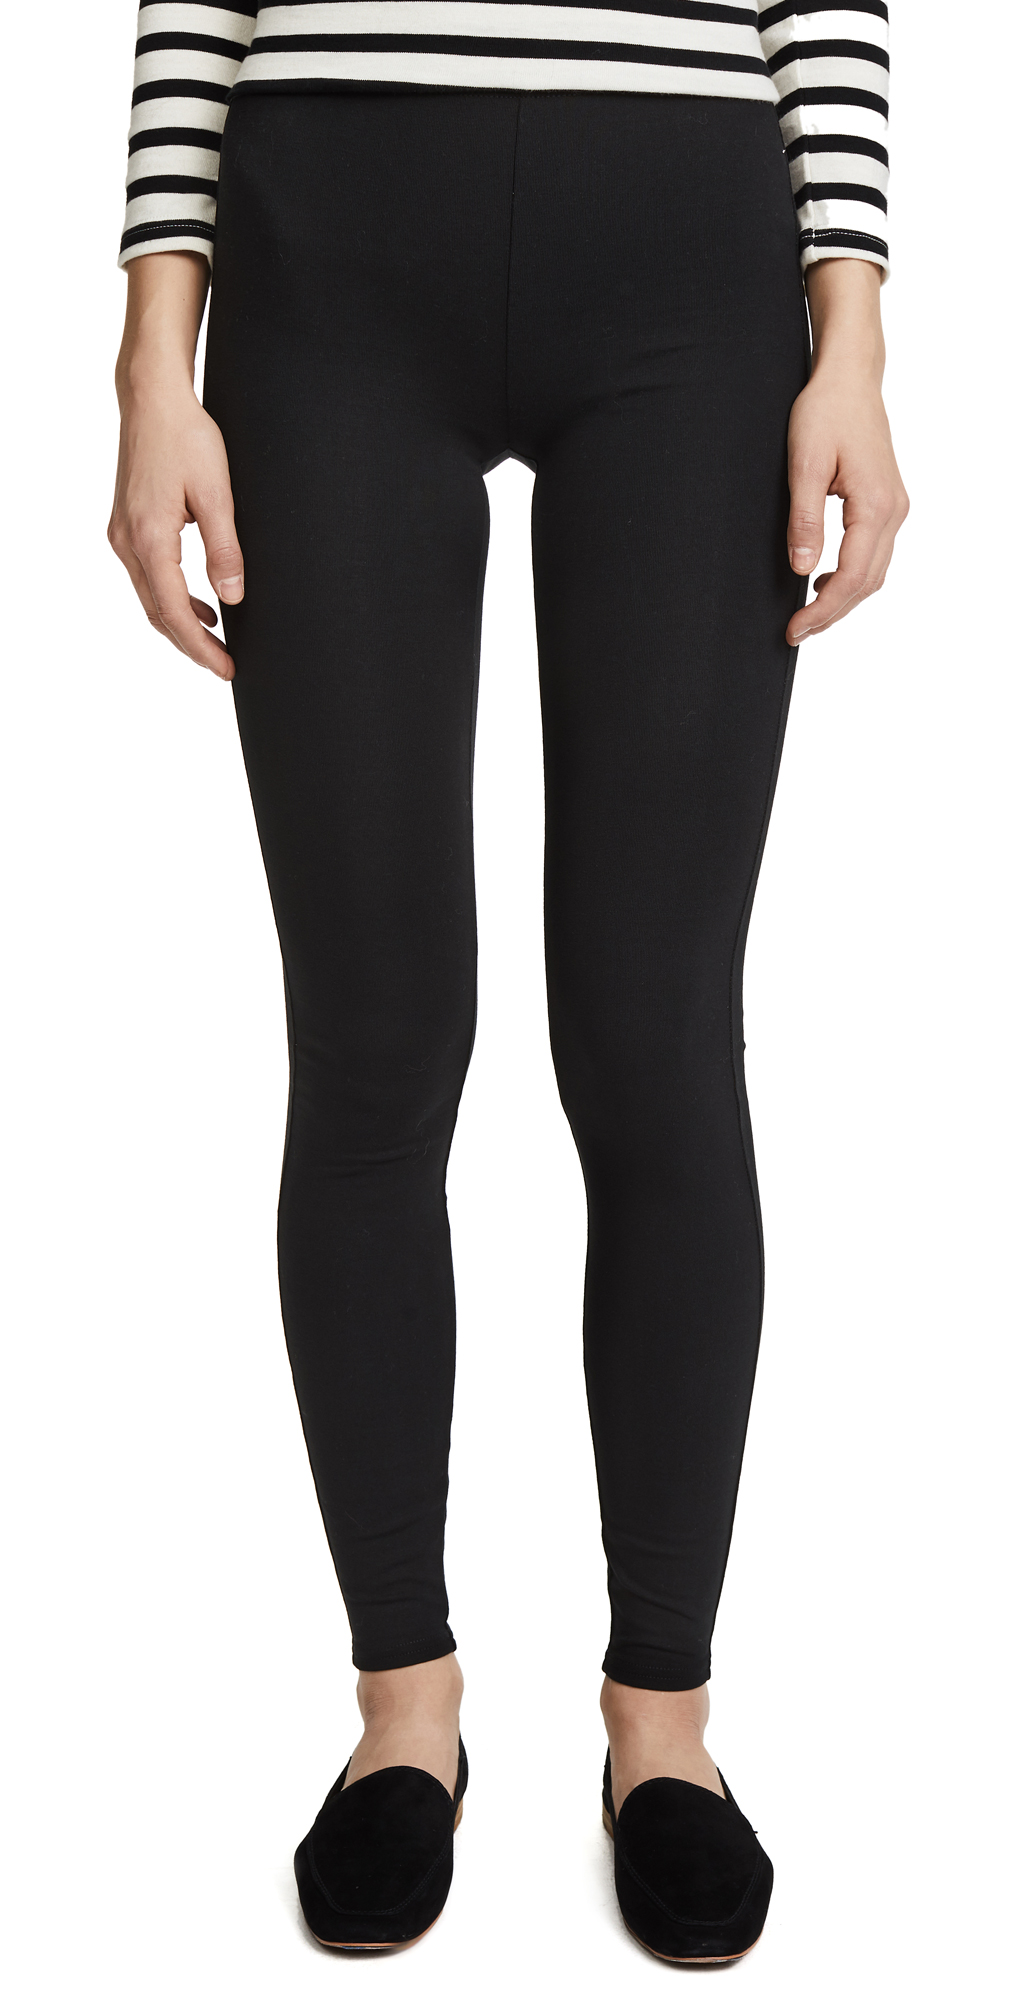 Madewell High Rise Ankle Leggings